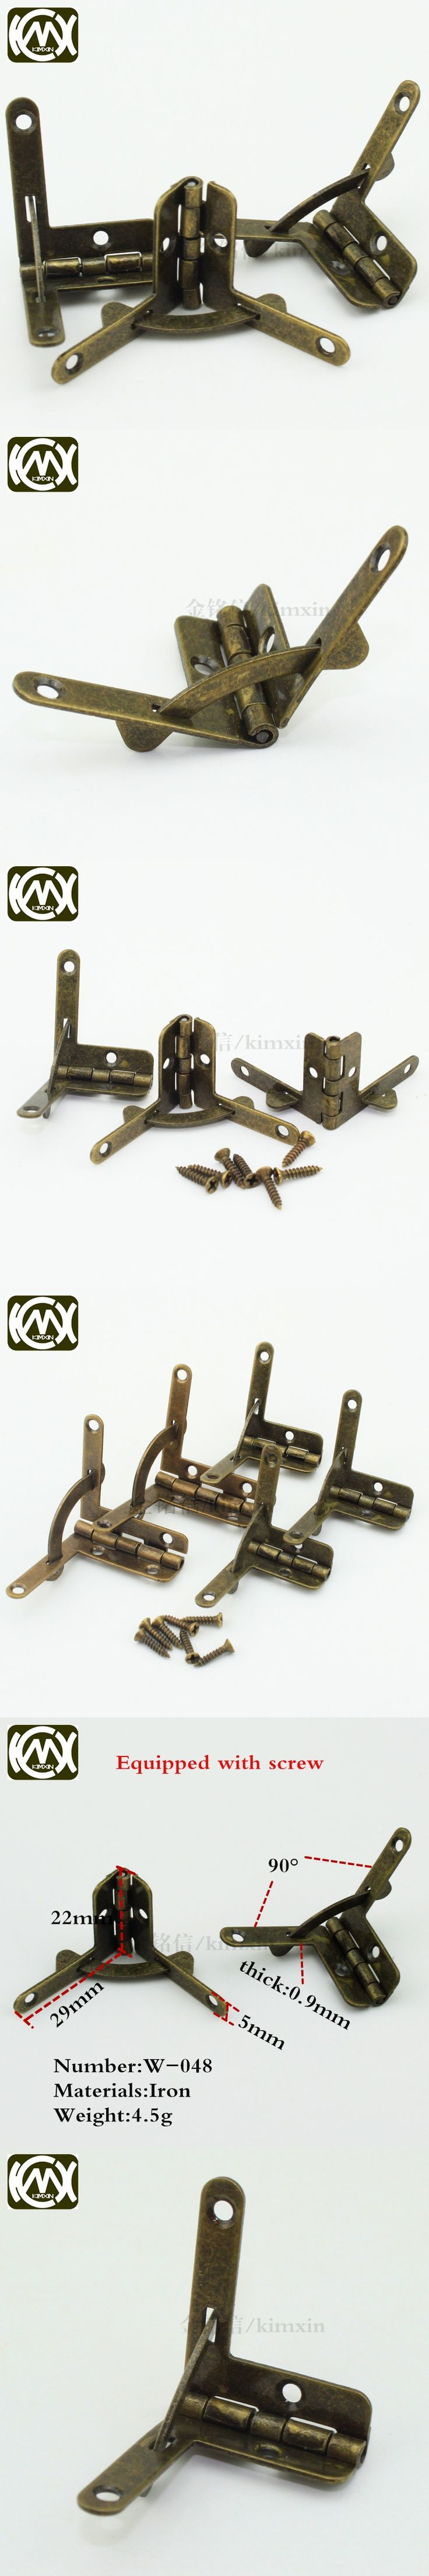 10pc/lot 22*29mm 90Degree antique brass wooden box hinge,packaging hardware hinge, factory direct high-grade hinge KIMXIN W-048